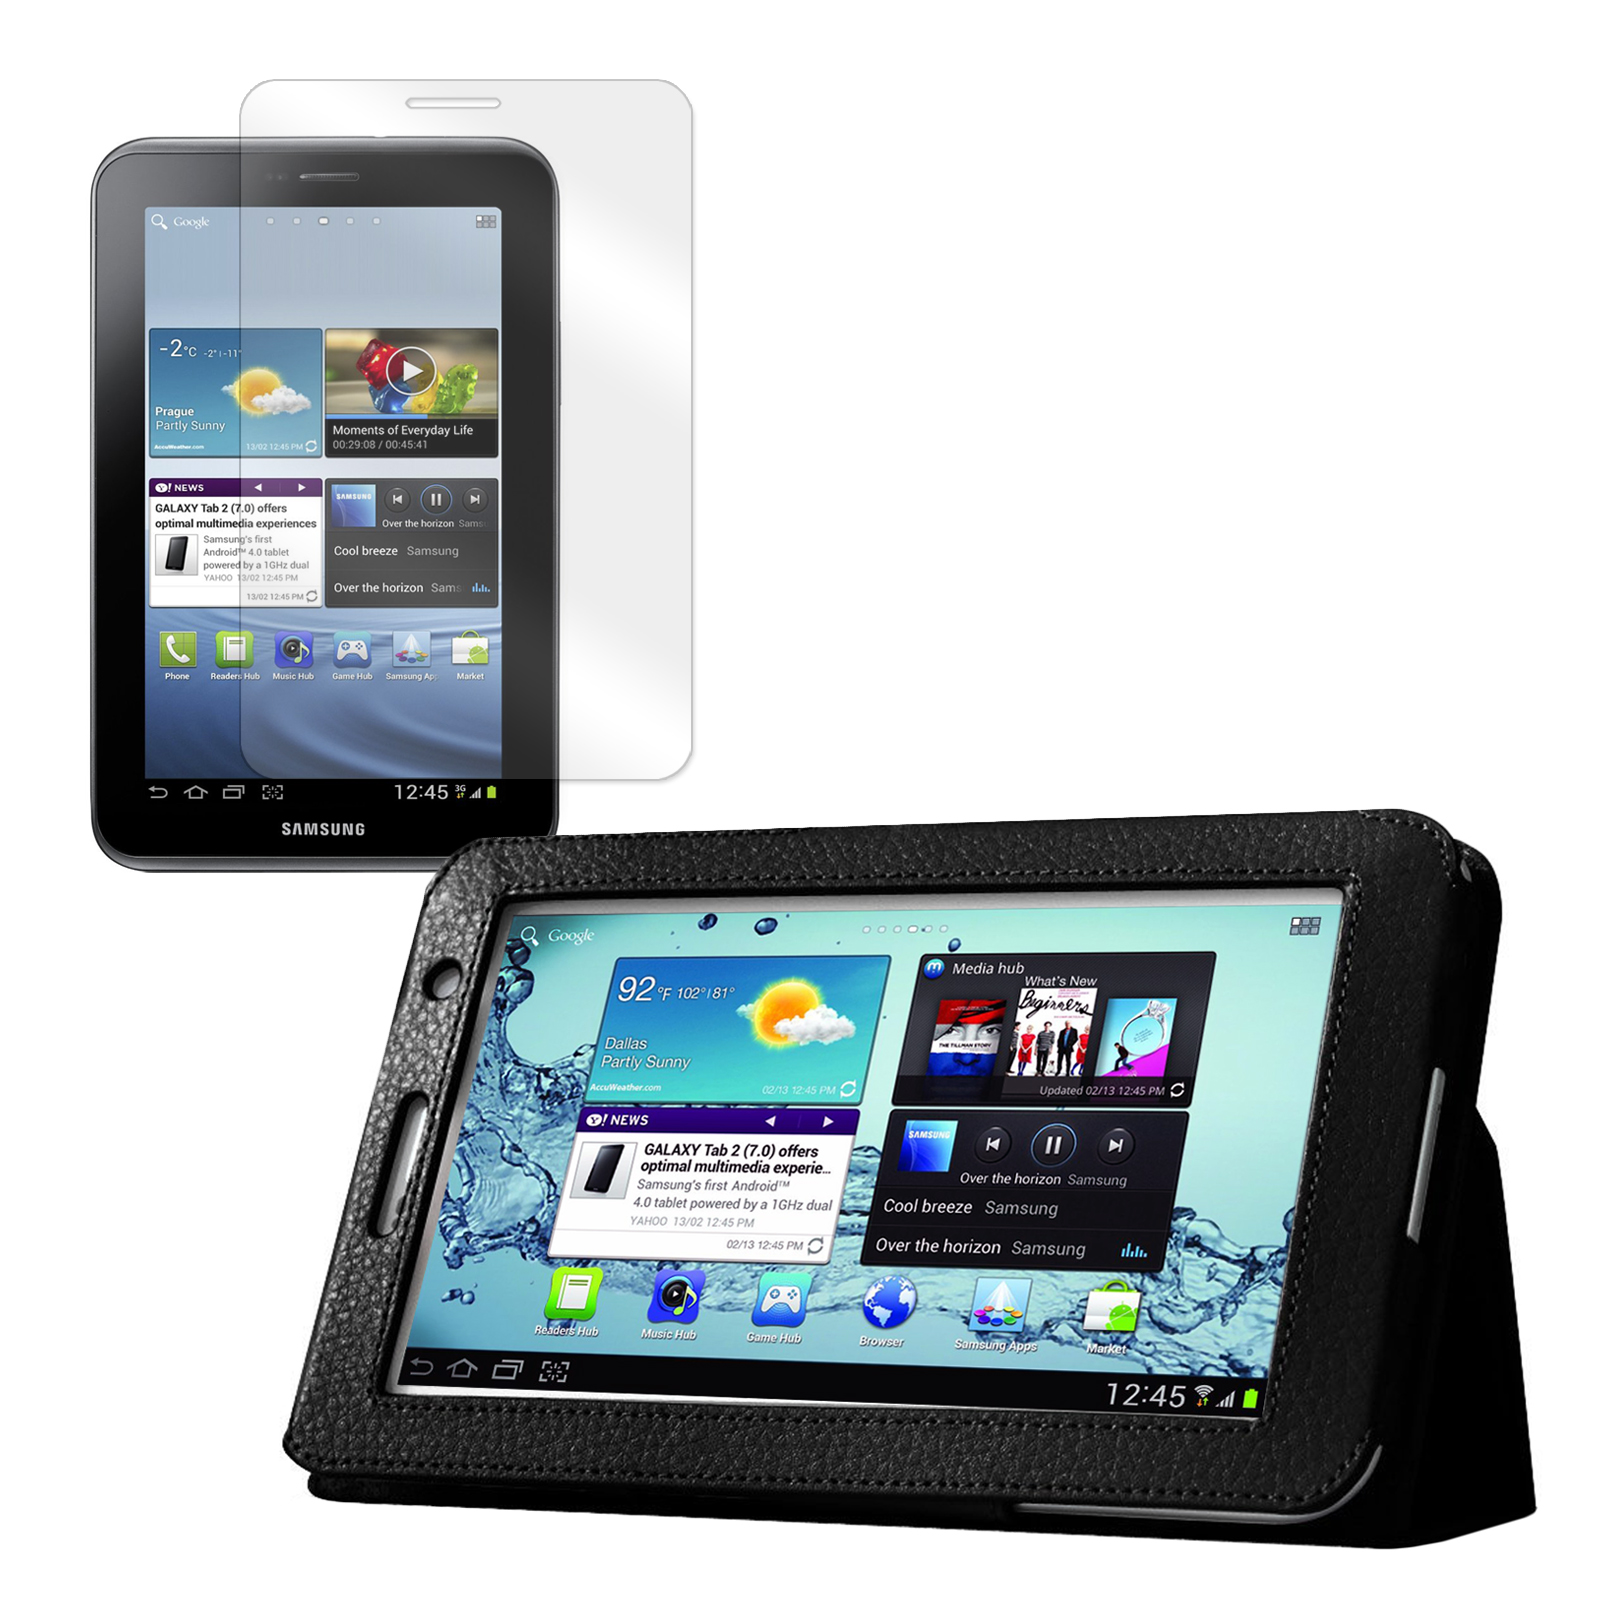 MGear Accessory Bundle for Samsung Galaxy Tab 2 7.0 in. Tablet